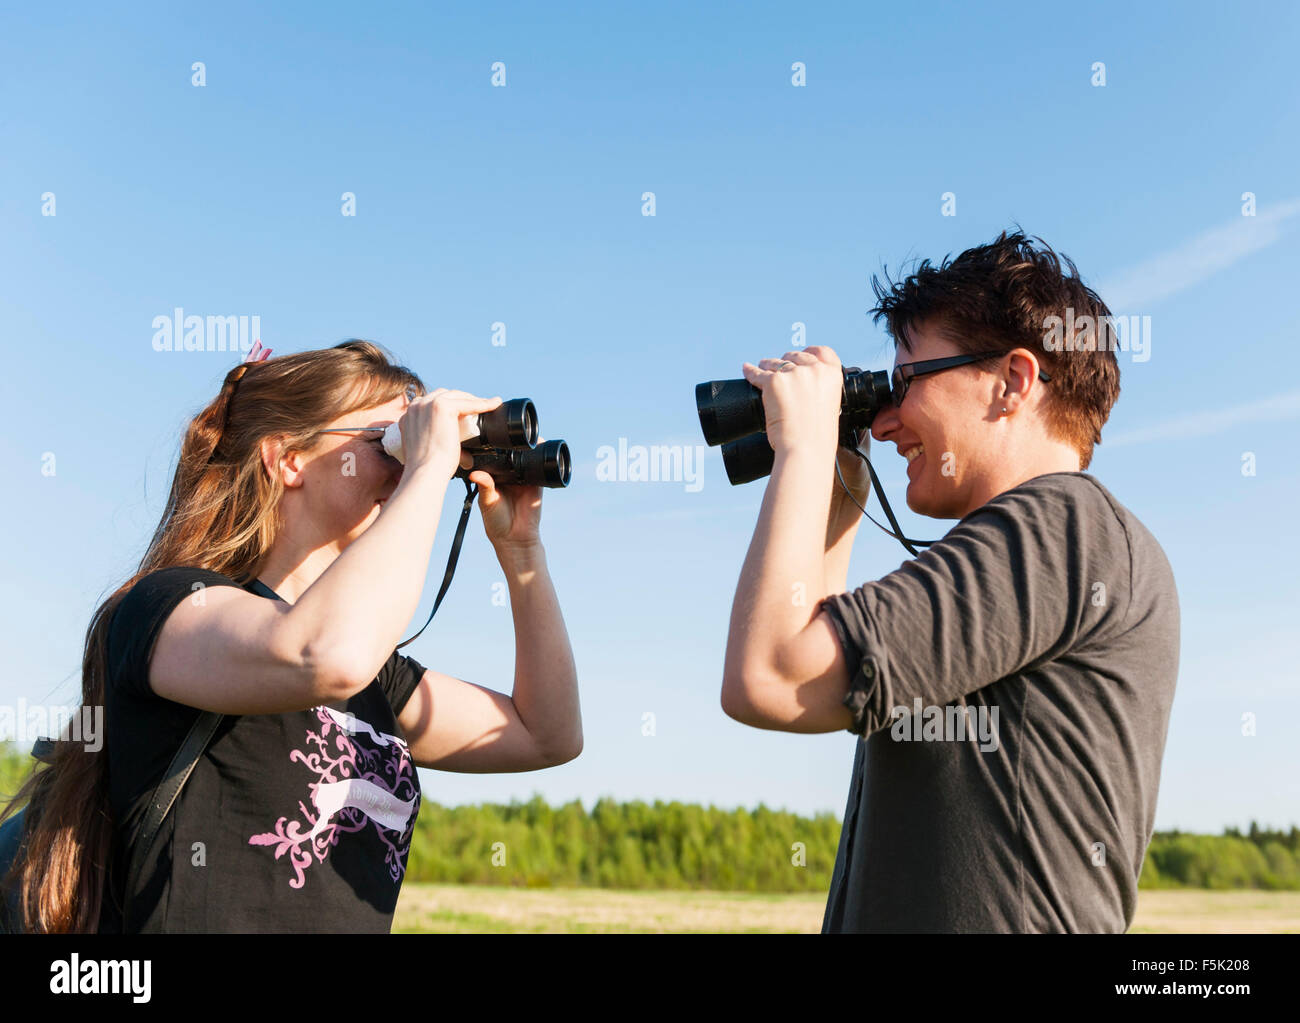 Close observation - Stock Image